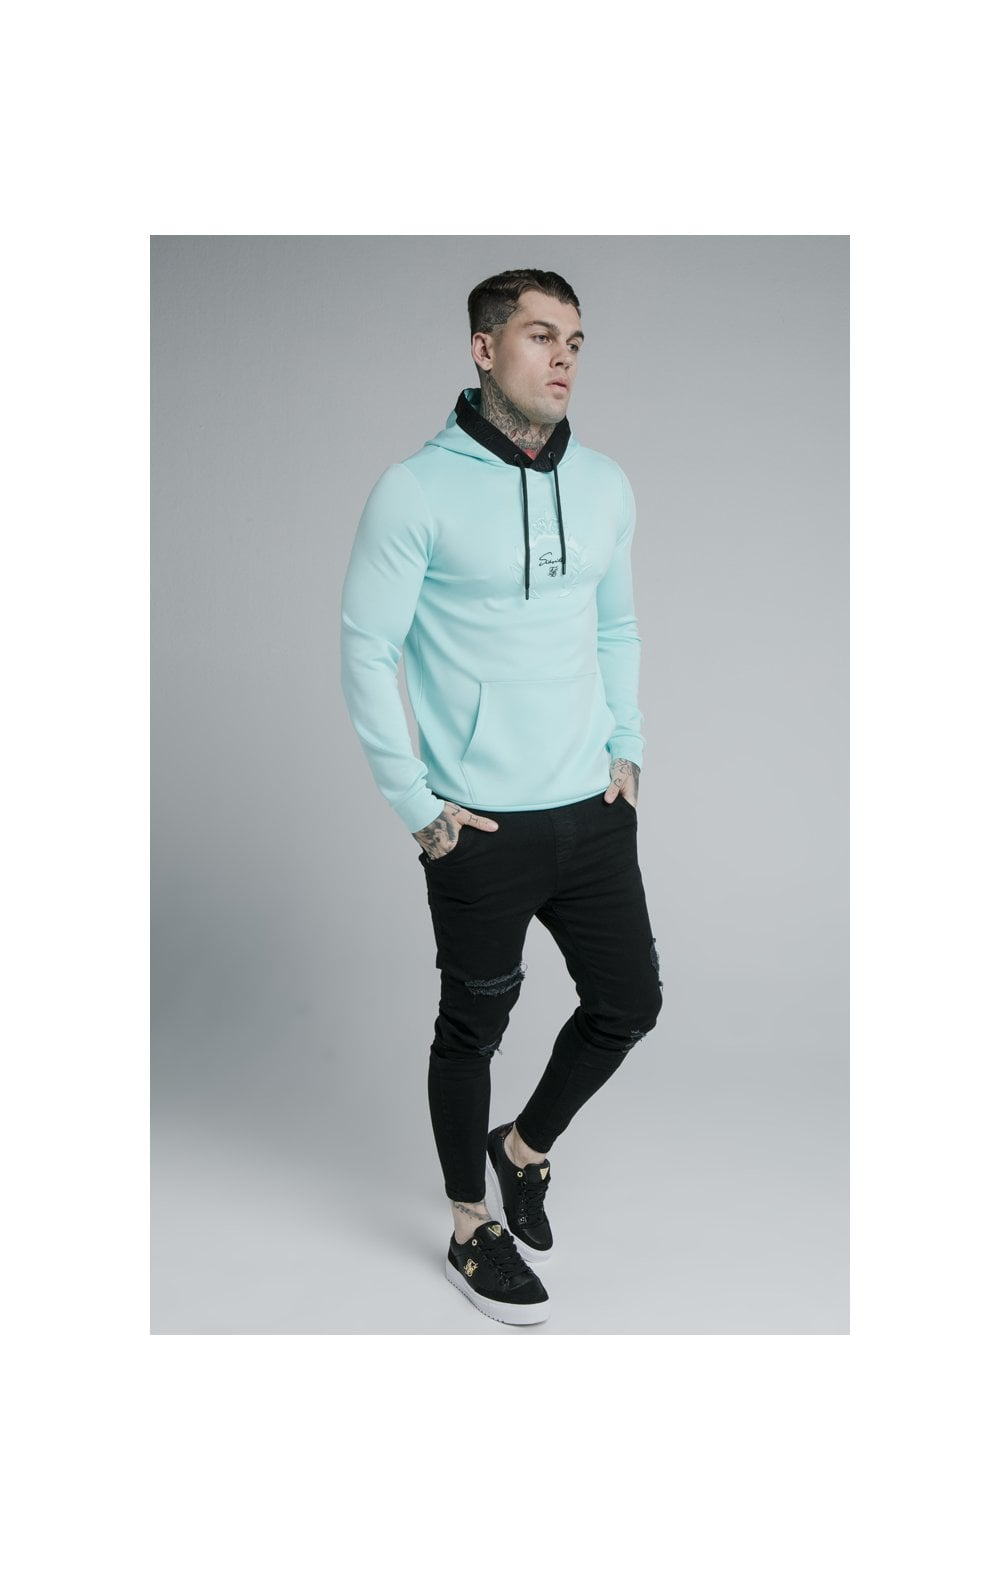 Load image into Gallery viewer, SikSilk Prestige Overhead Hoodie - Teal (4)